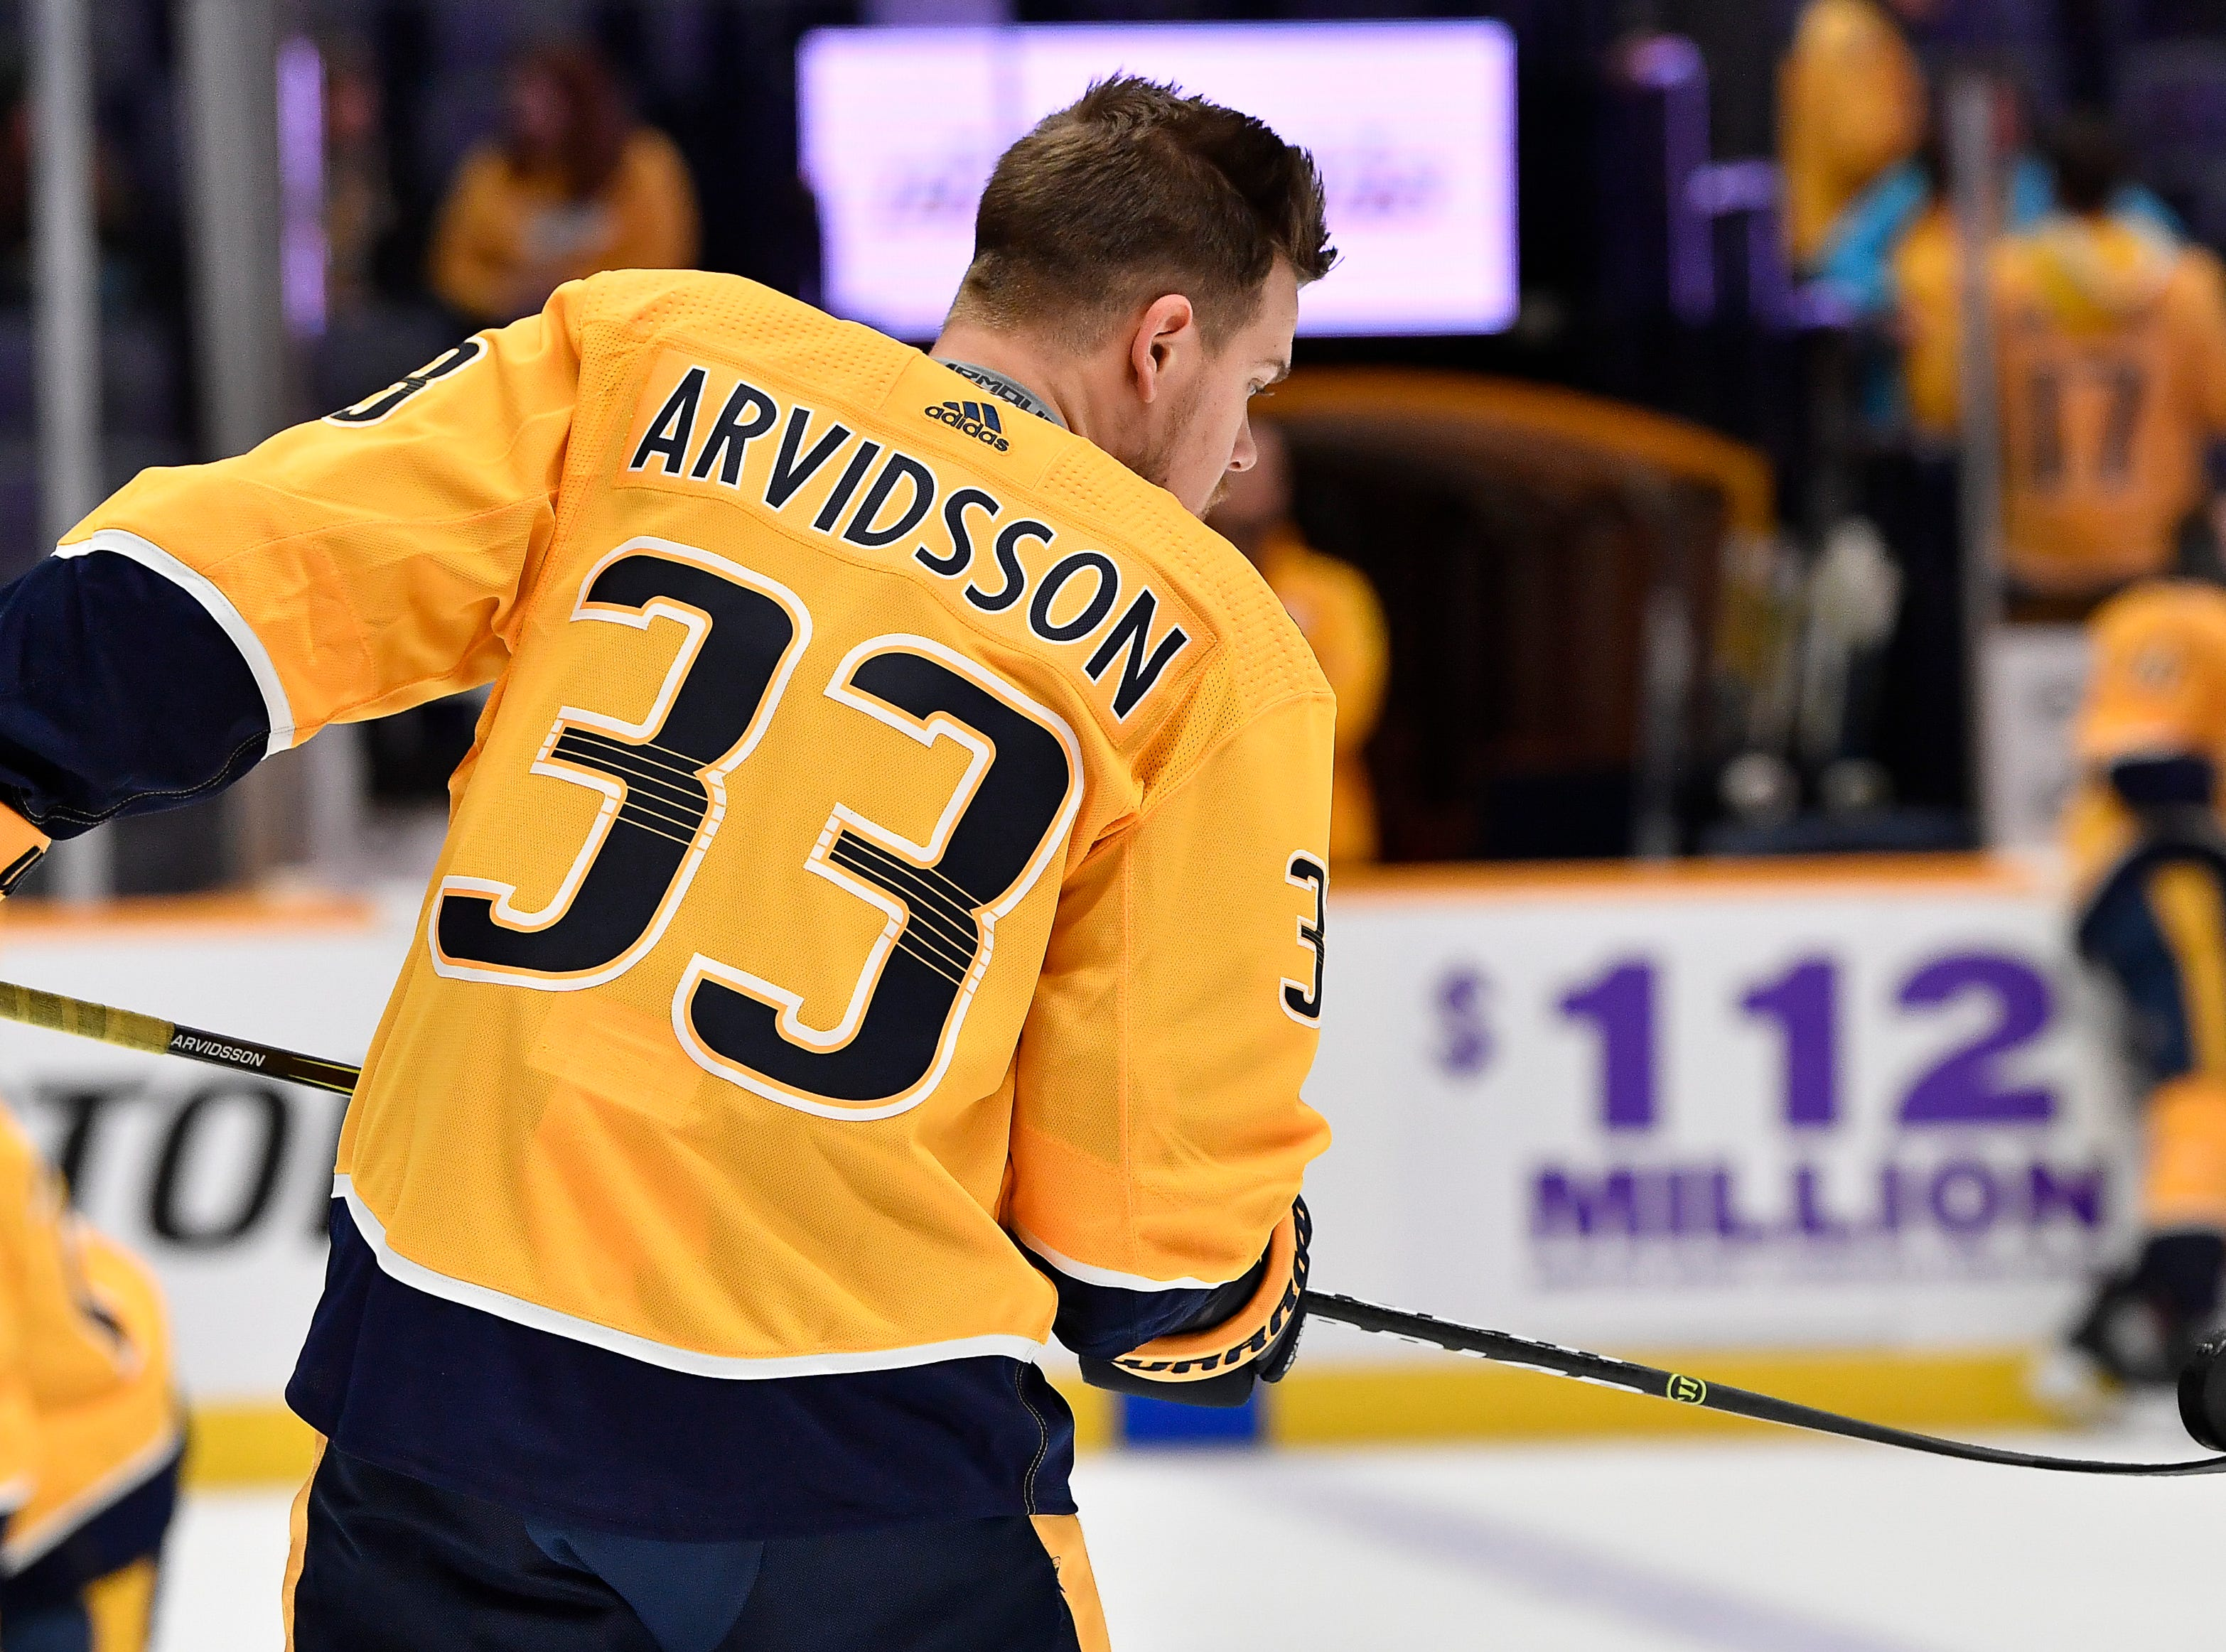 Predators right wing Viktor Arvidsson (33) warms up before the game against the Capitals at Bridgestone Arena Tuesday, Jan. 15, 2019, in Nashville, Tenn.